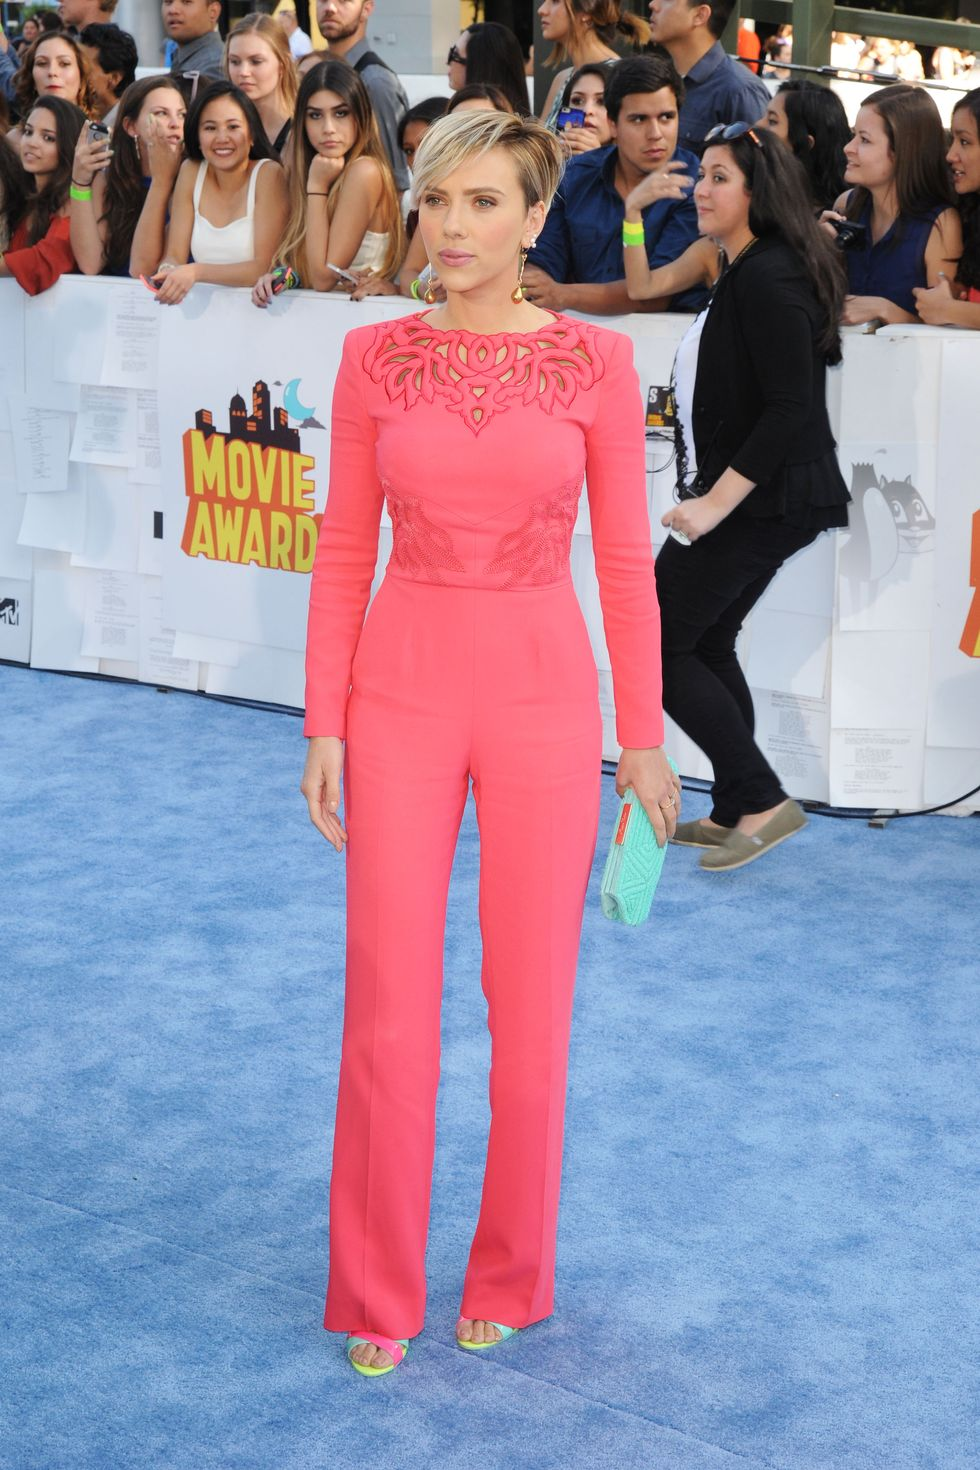 The Best and Worst Celebrity Fashion at the MTV Movie Awards